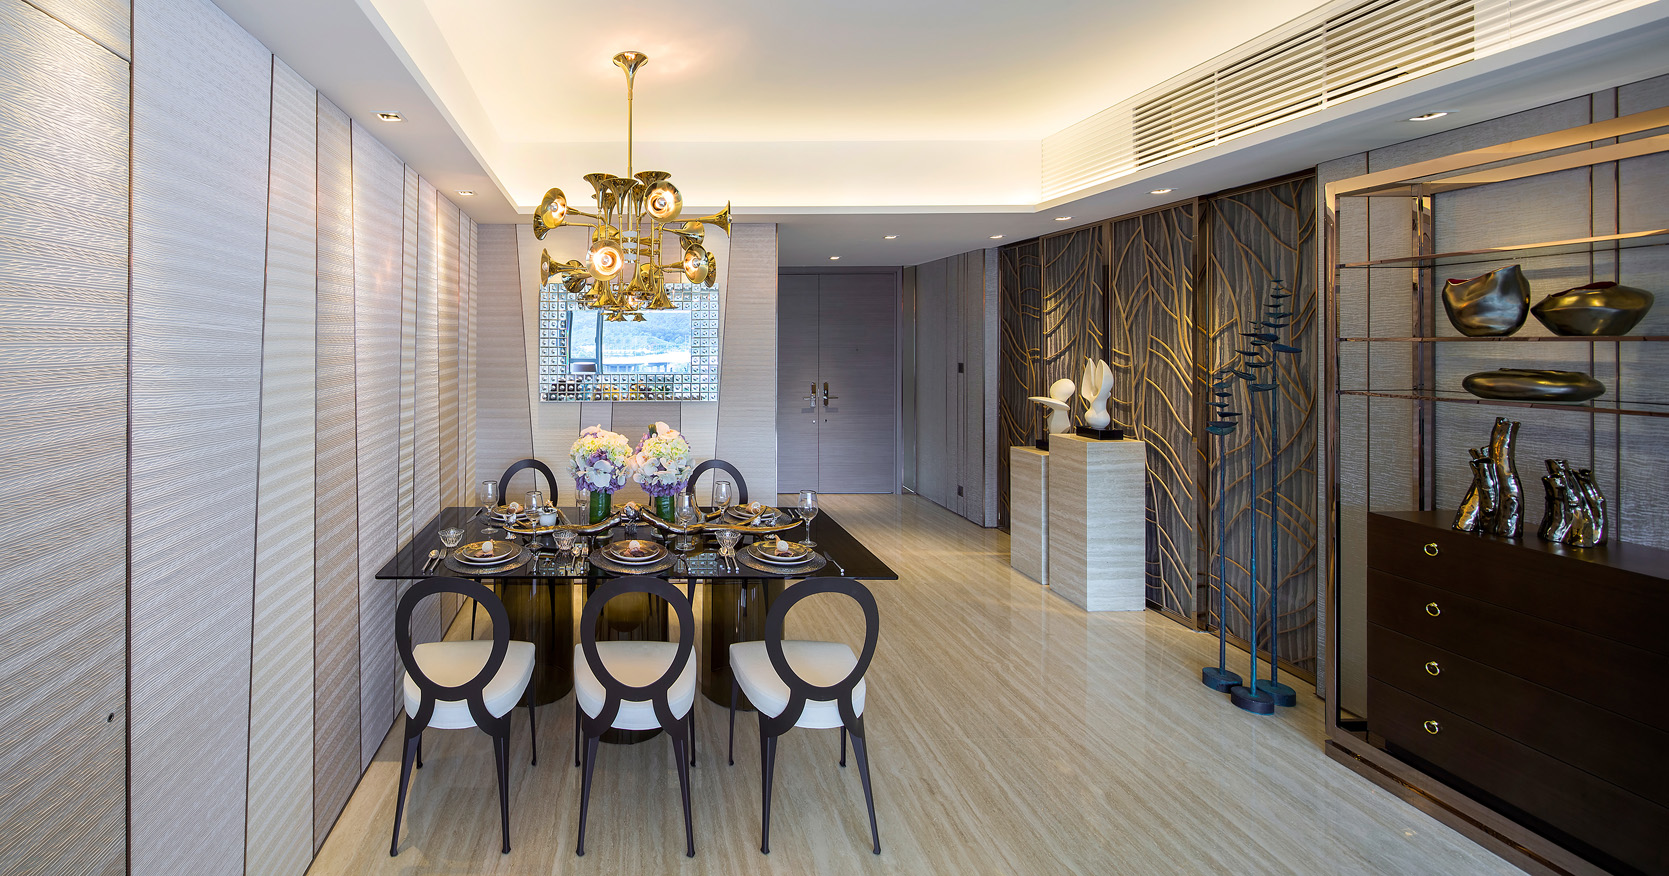 Dining room lighting ideas for a luxury interior Tom Bartlett Inspirations from best interior designers: Tom Bartlett Dining room lighting ideas Delightfull Botti Tom Bartlett Inspirations from best interior designers: Tom Bartlett Dining room lighting ideas Delightfull Botti